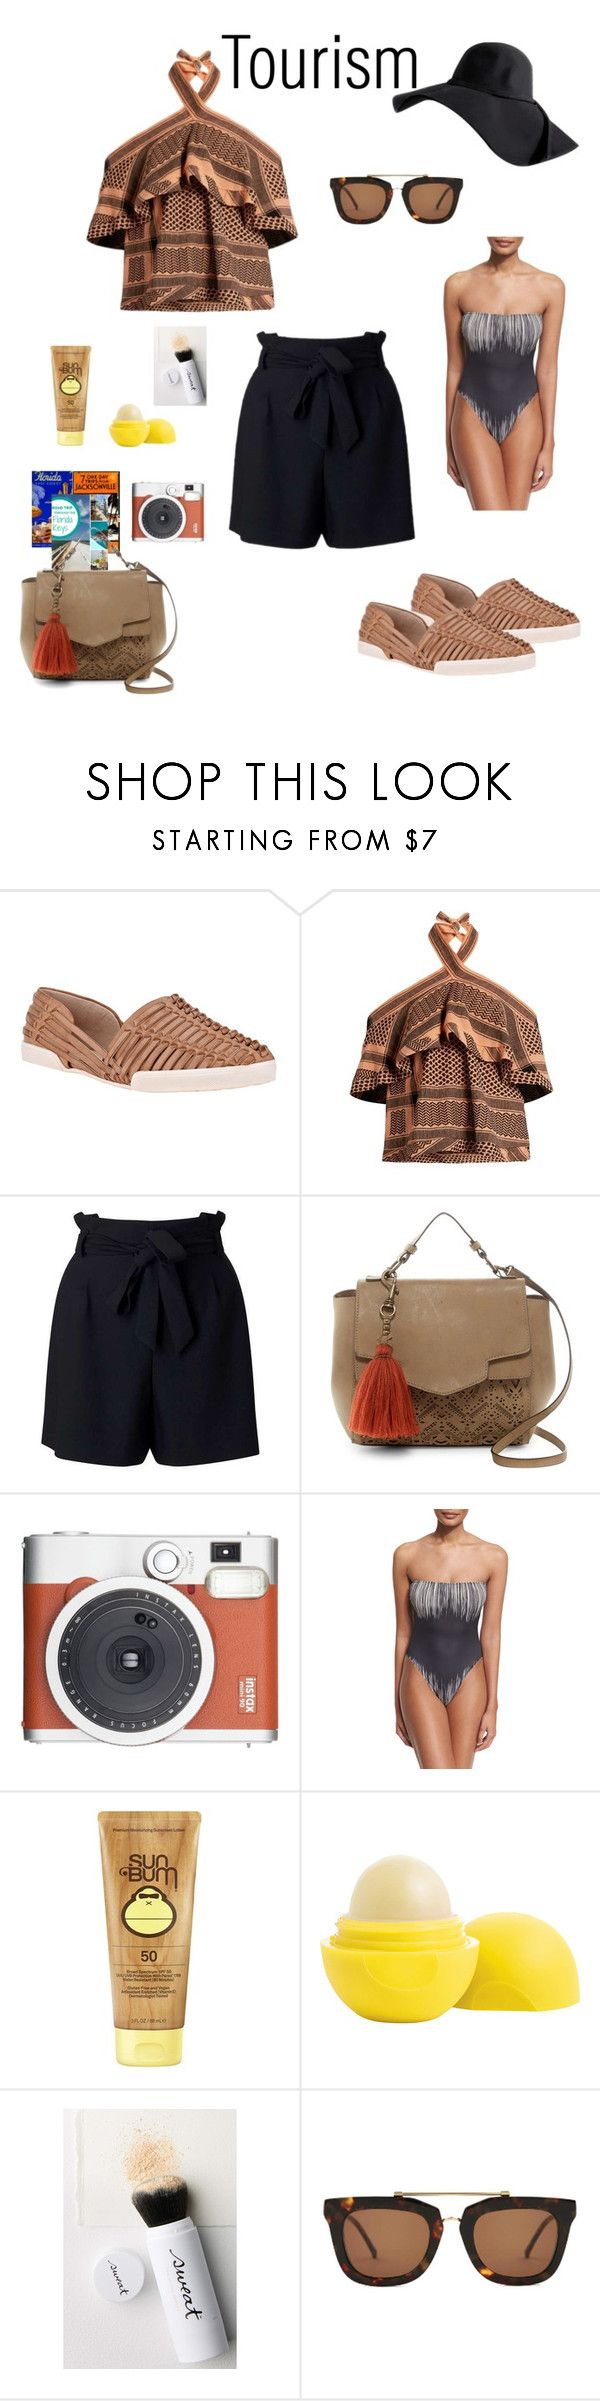 """Florida Tourism"" by njpryce ❤ liked on Polyvore featuring Elliott Lucca, CECILIE Copenhagen, Miss Selfridge, T-shirt & Jeans, Fuji, Norma Kamali, Sun Bum, Eos, Sweat and Kaibosh"